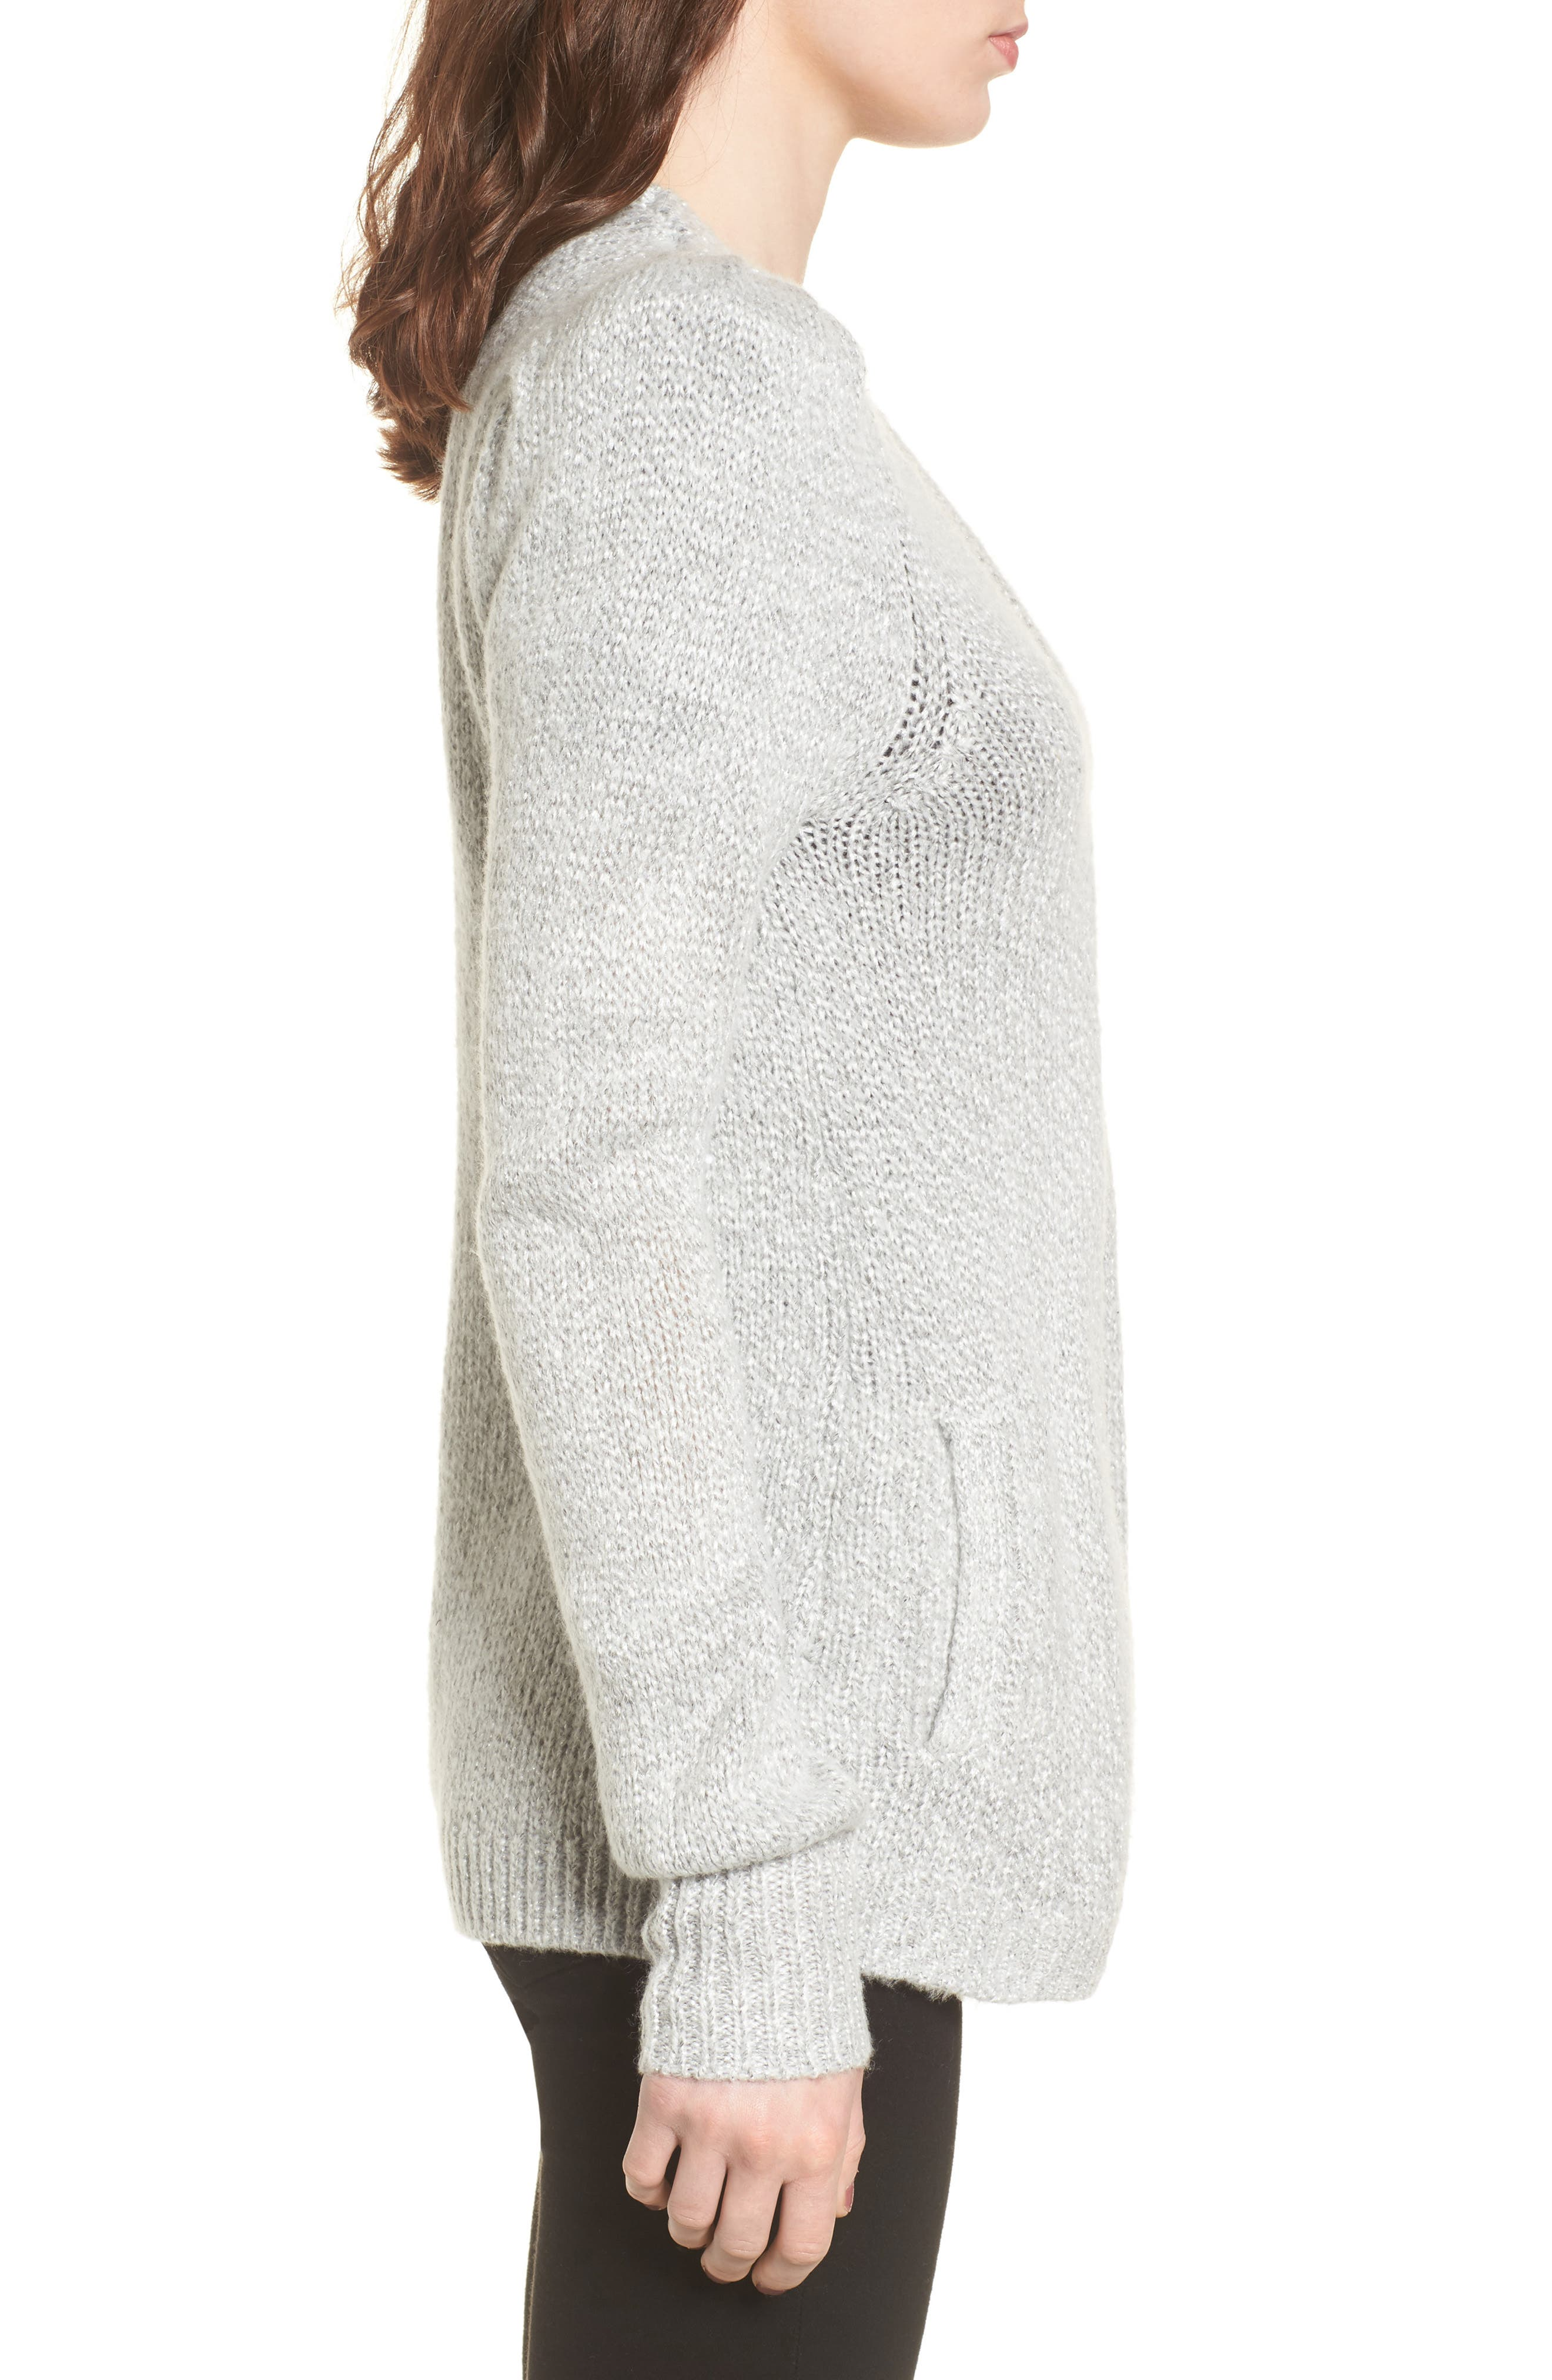 Shine Cardigan Sweater,                             Alternate thumbnail 3, color,                             Grey Light Heather Combo